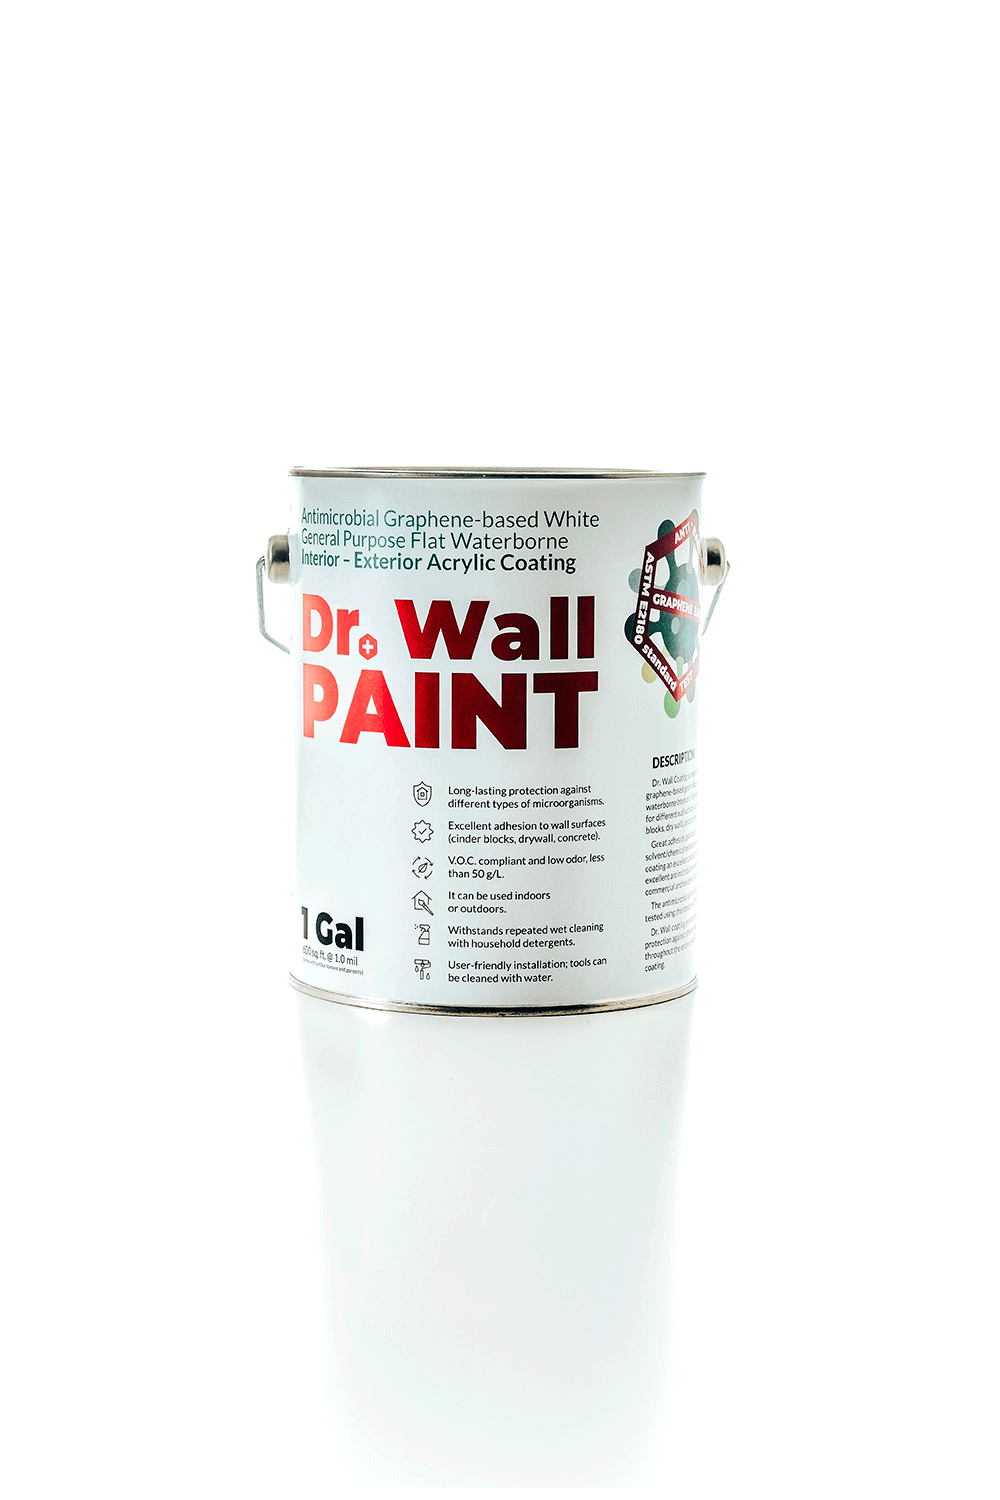 Dr. Wall Antimicrobial Paint (White, 1 gal)